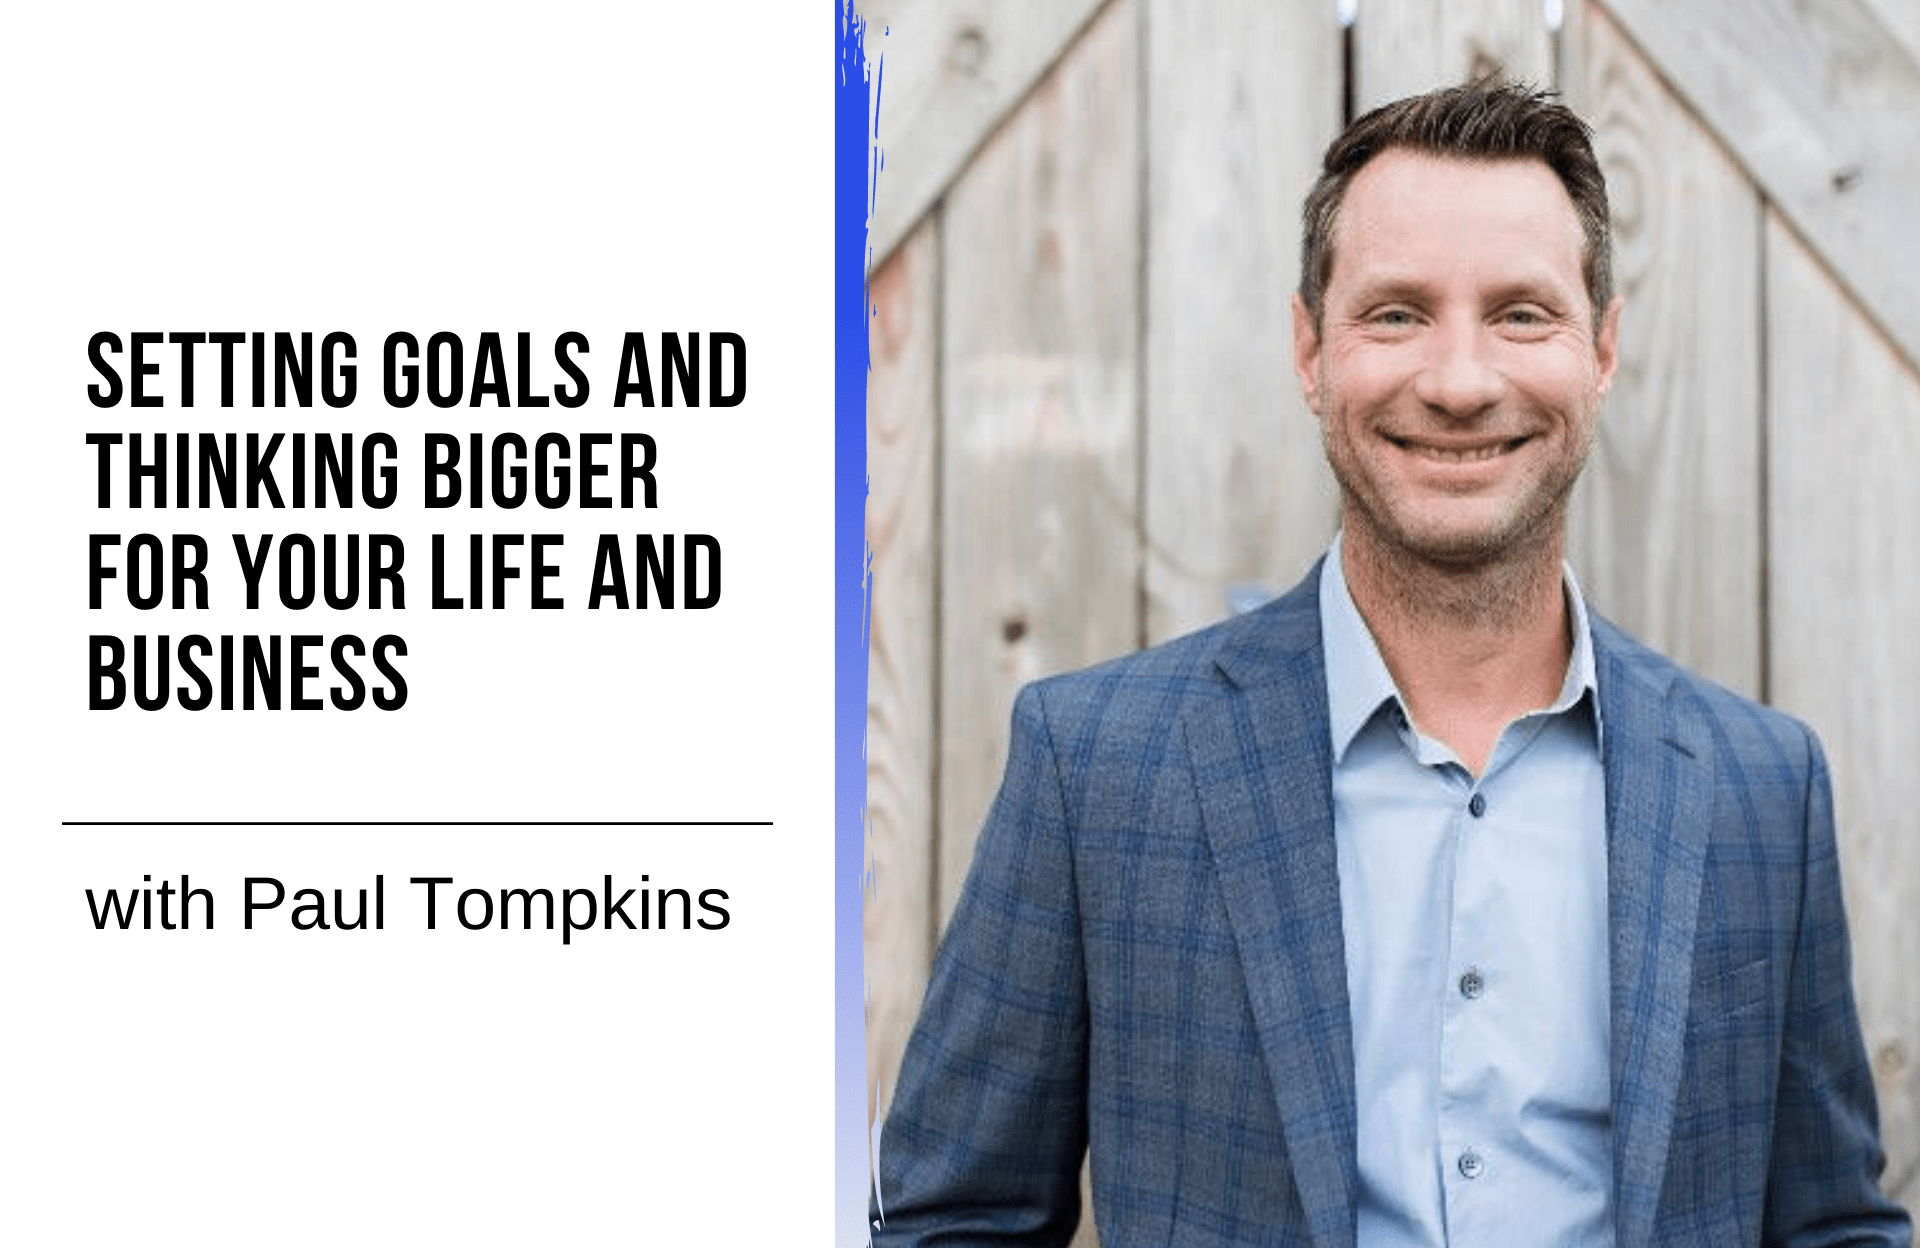 Setting Goals and Thinking Bigger for Your Life and Business with Paul Tompkins